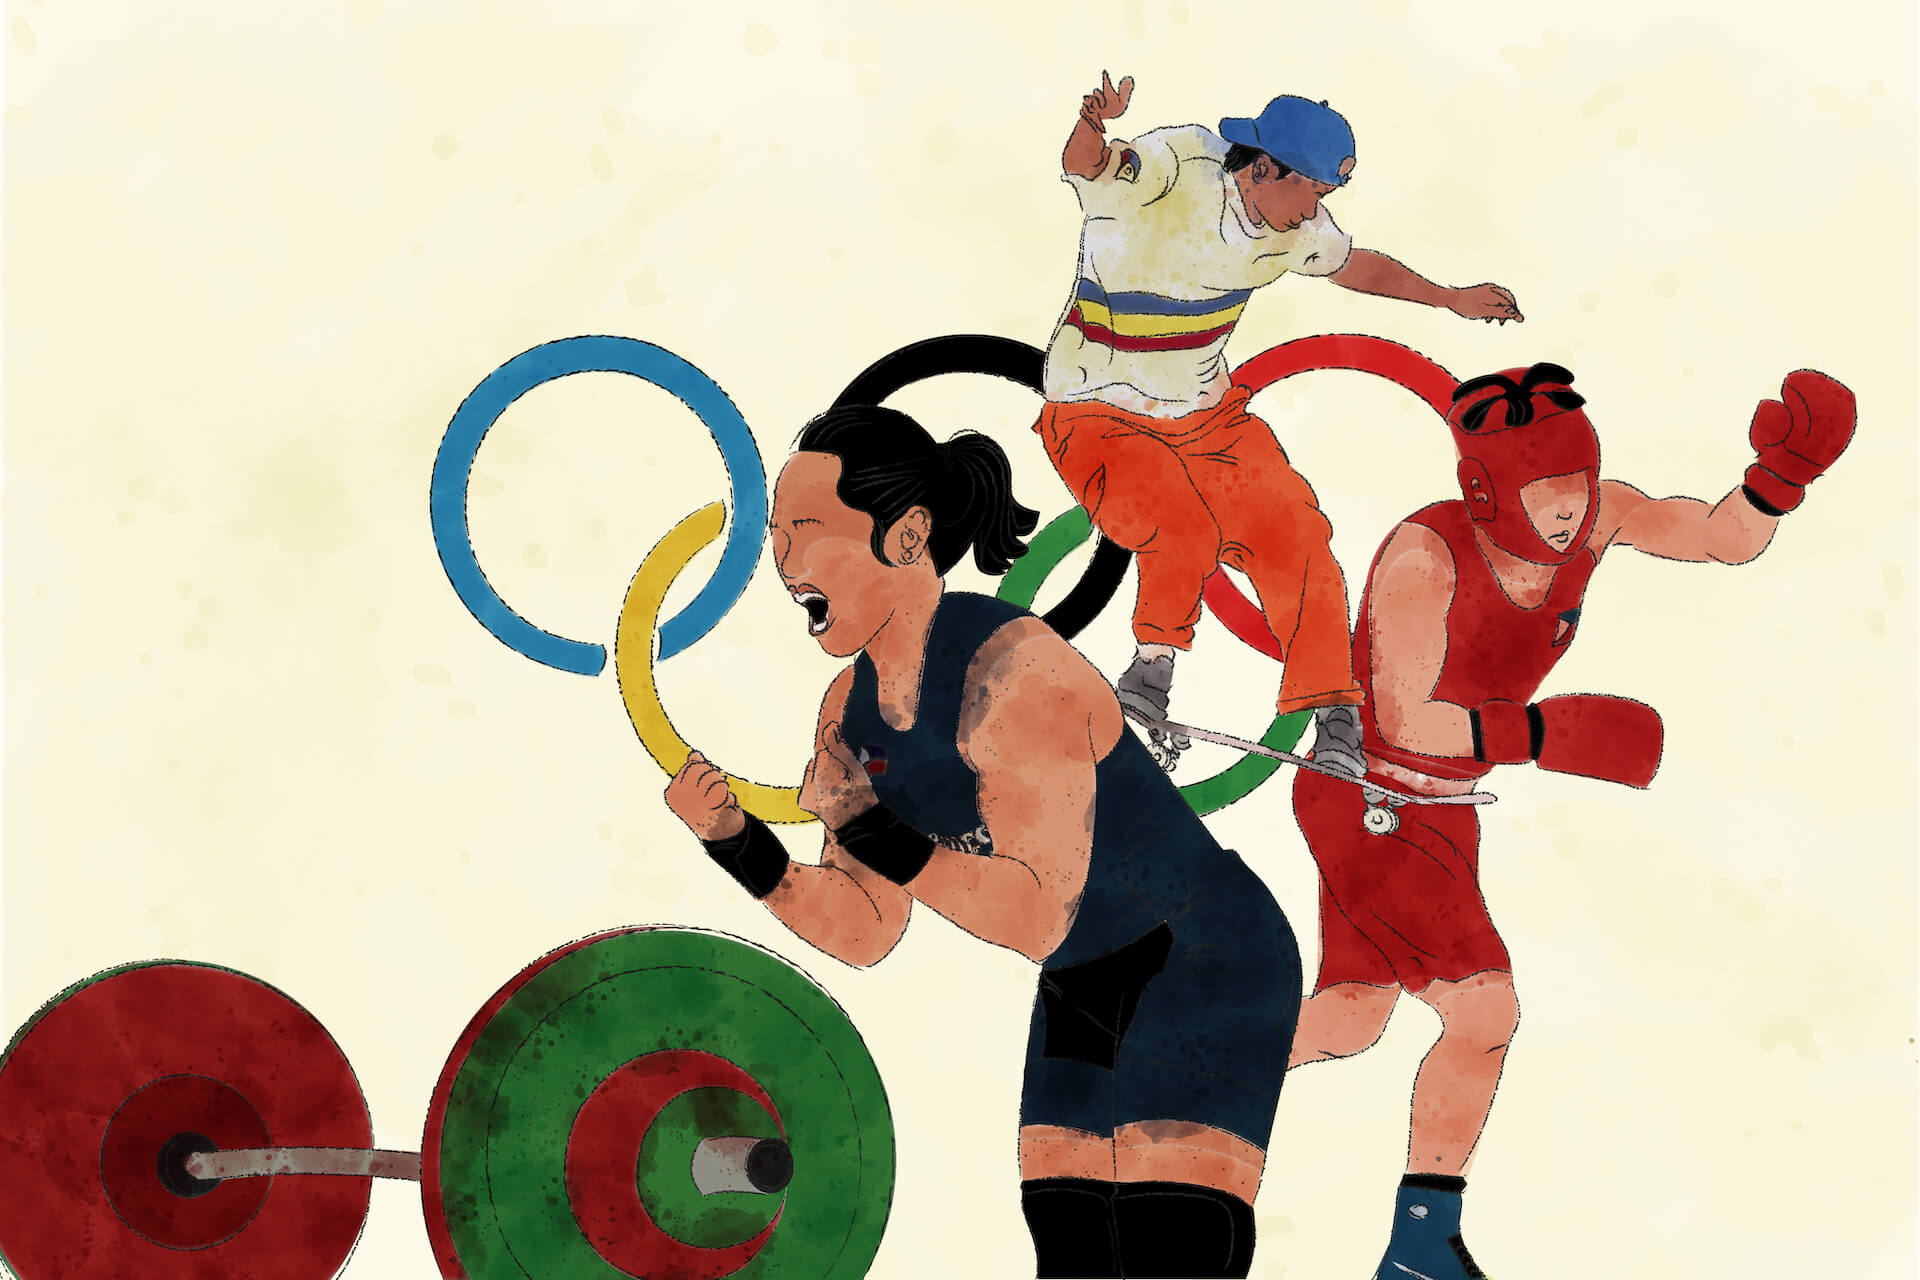 Our resident sports fan makes a toast to the journeys of Hidilyn Diaz, Margielyn Didal, and Nesthy Petecio—and a plea for supporting Filipino athletes year-round.